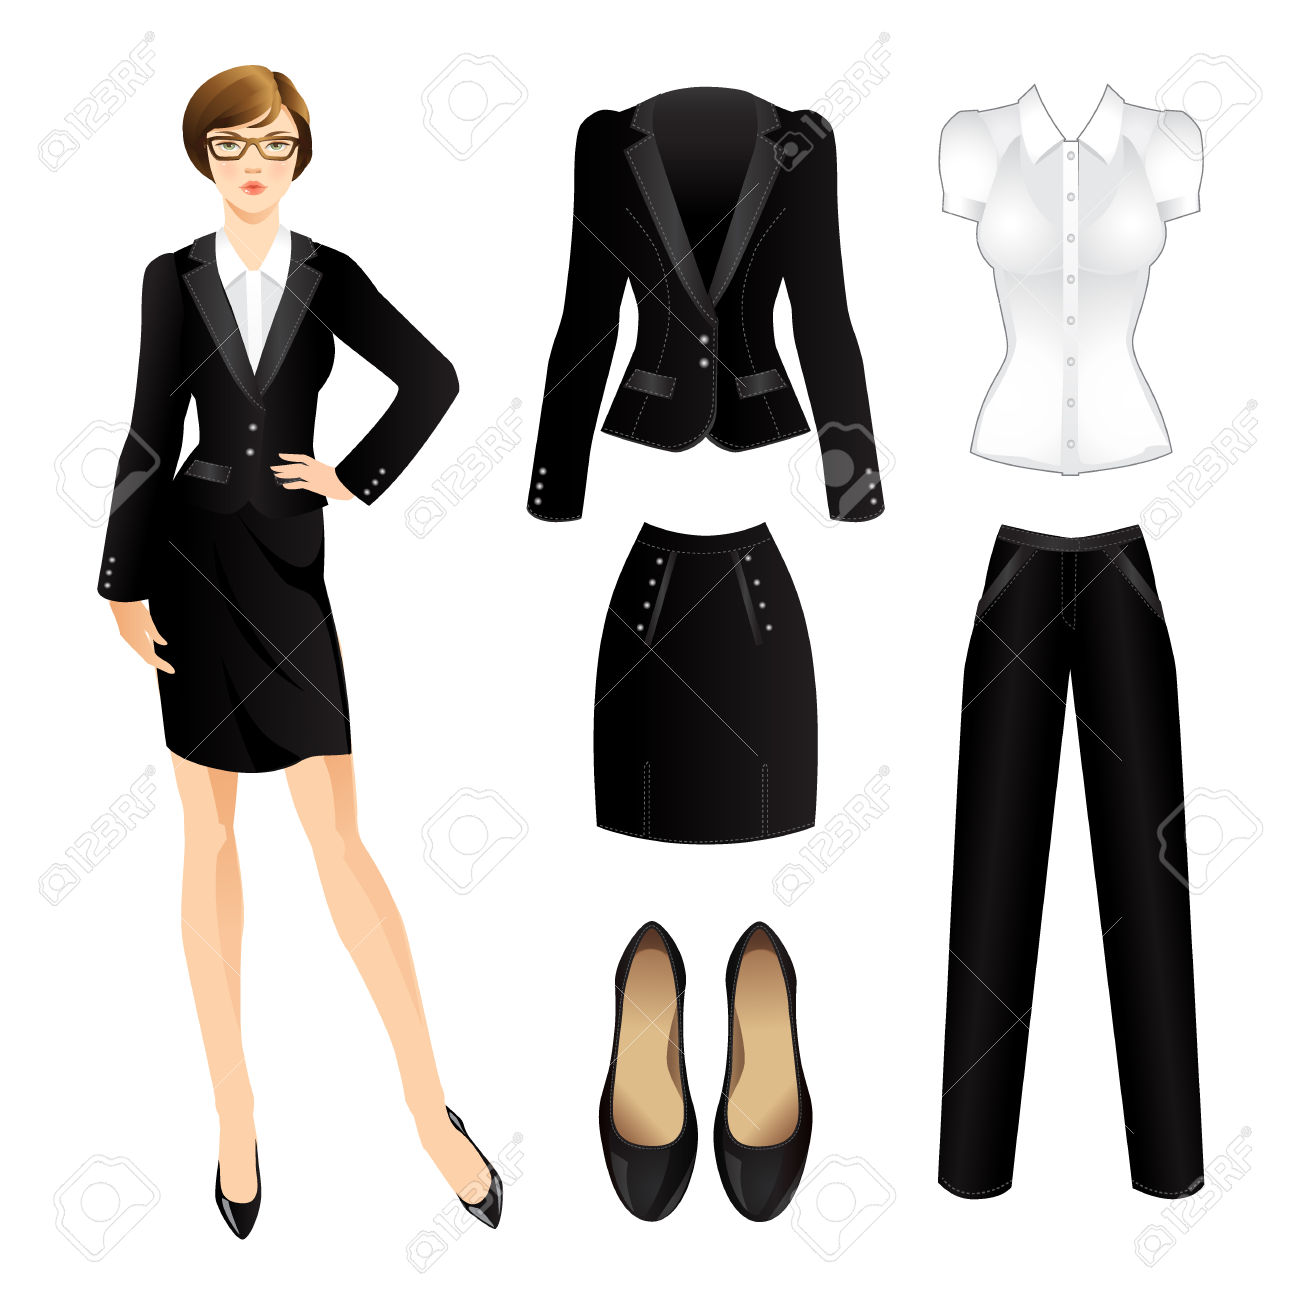 Work Clothing Stock Photos & Pictures. Royalty Free Work Clothing.